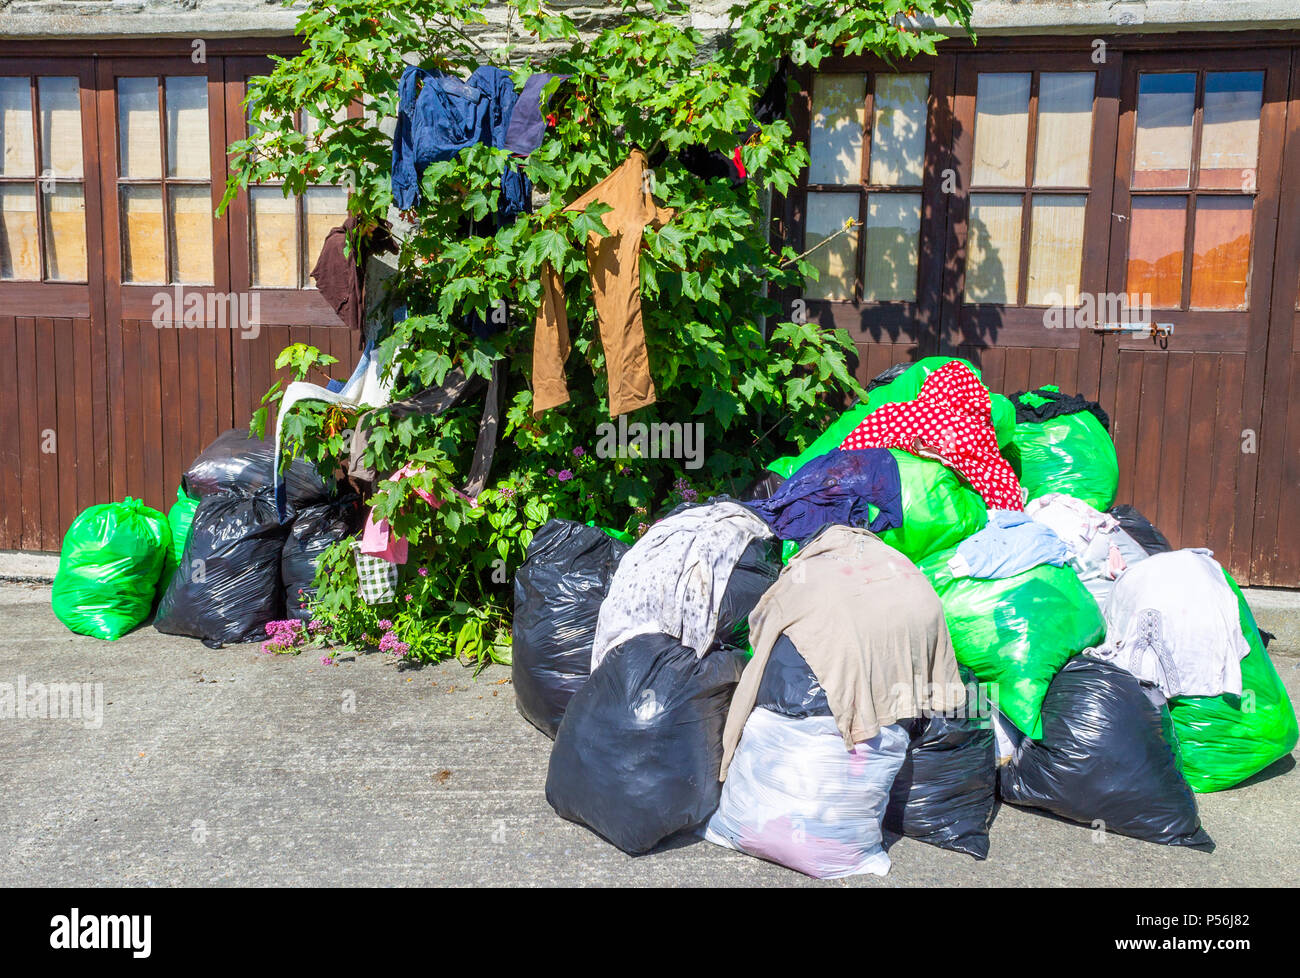 recycled clothing in plastic sacks waiting to be collected for recycling - Stock Image